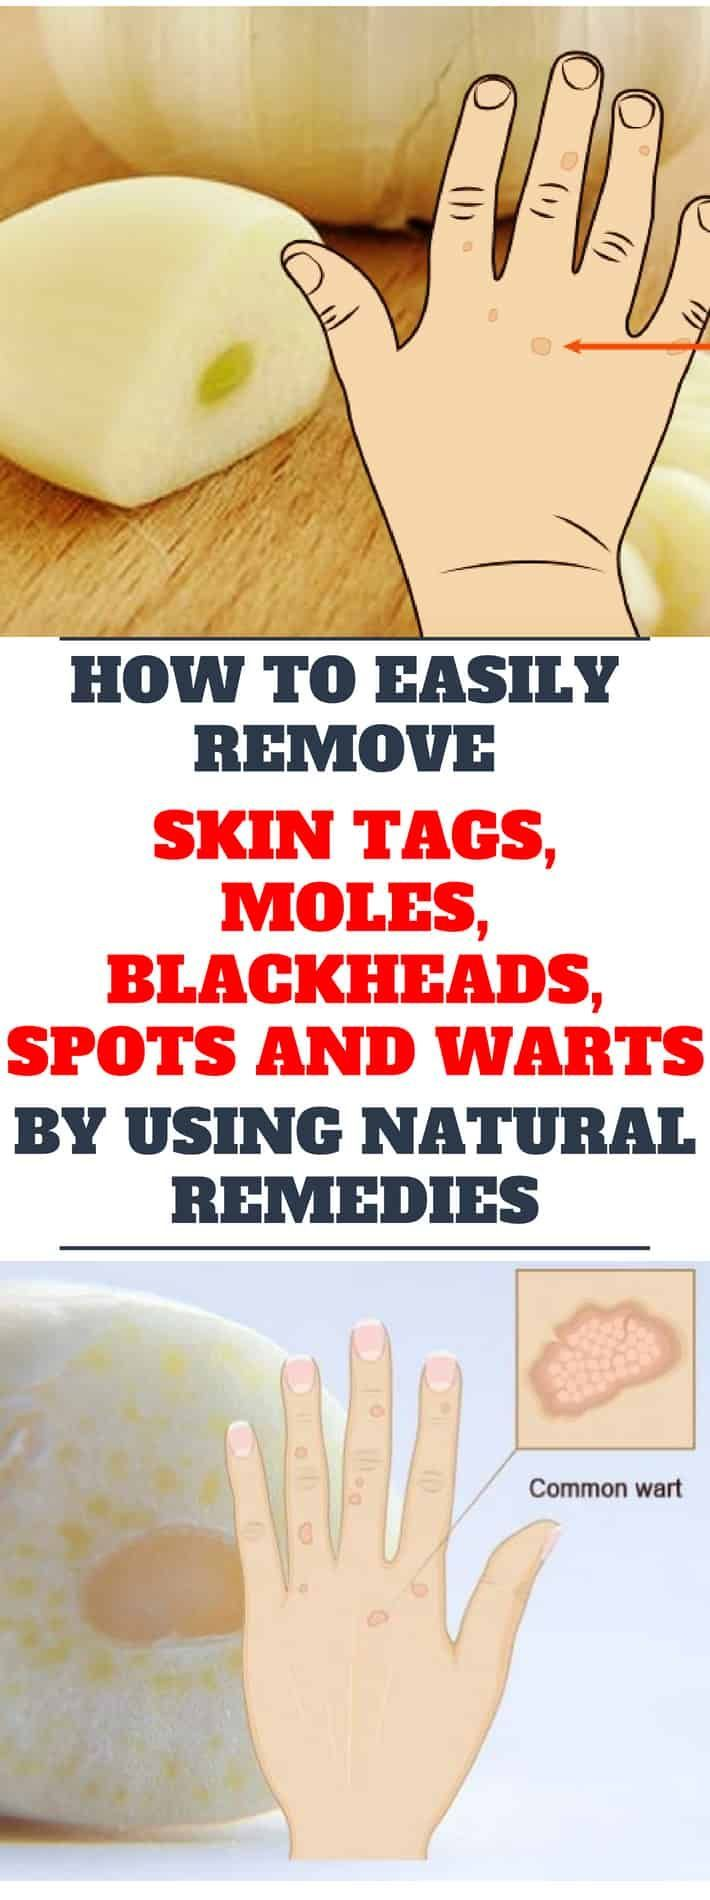 How to Easily Remove Skin Tags, Moles, Blackheads, Spots and Warts by Using Natural Remedies #skintagremedy